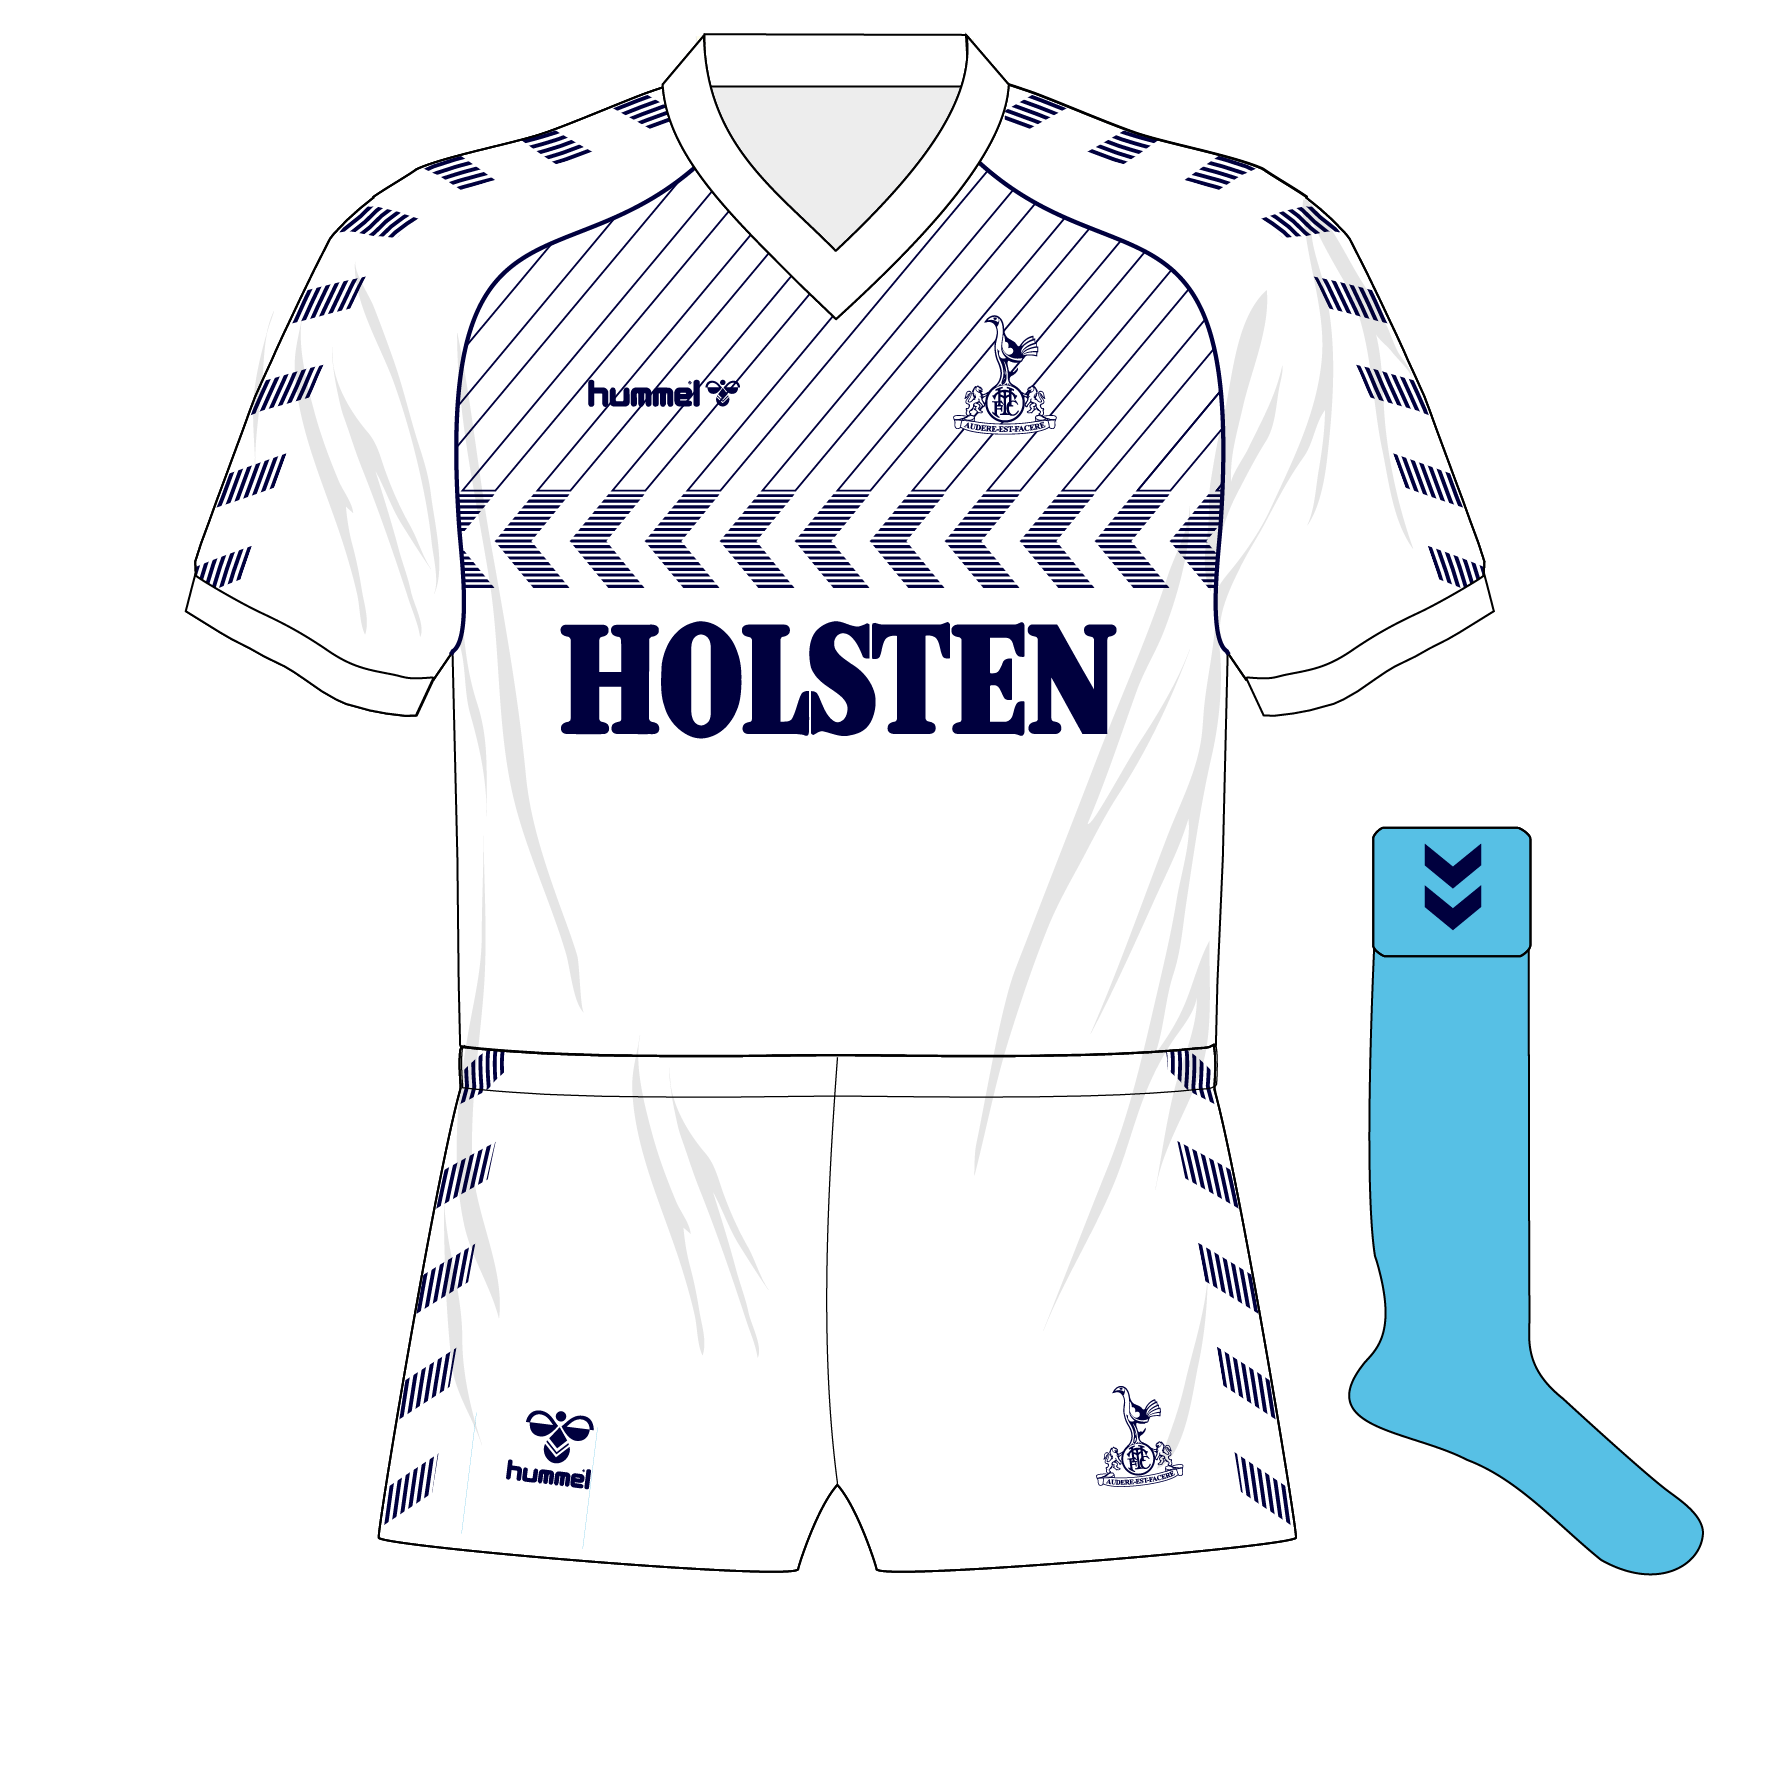 a8e9fe08bce Tottenham Hotspur  the Hummel years – Museum of Jerseys